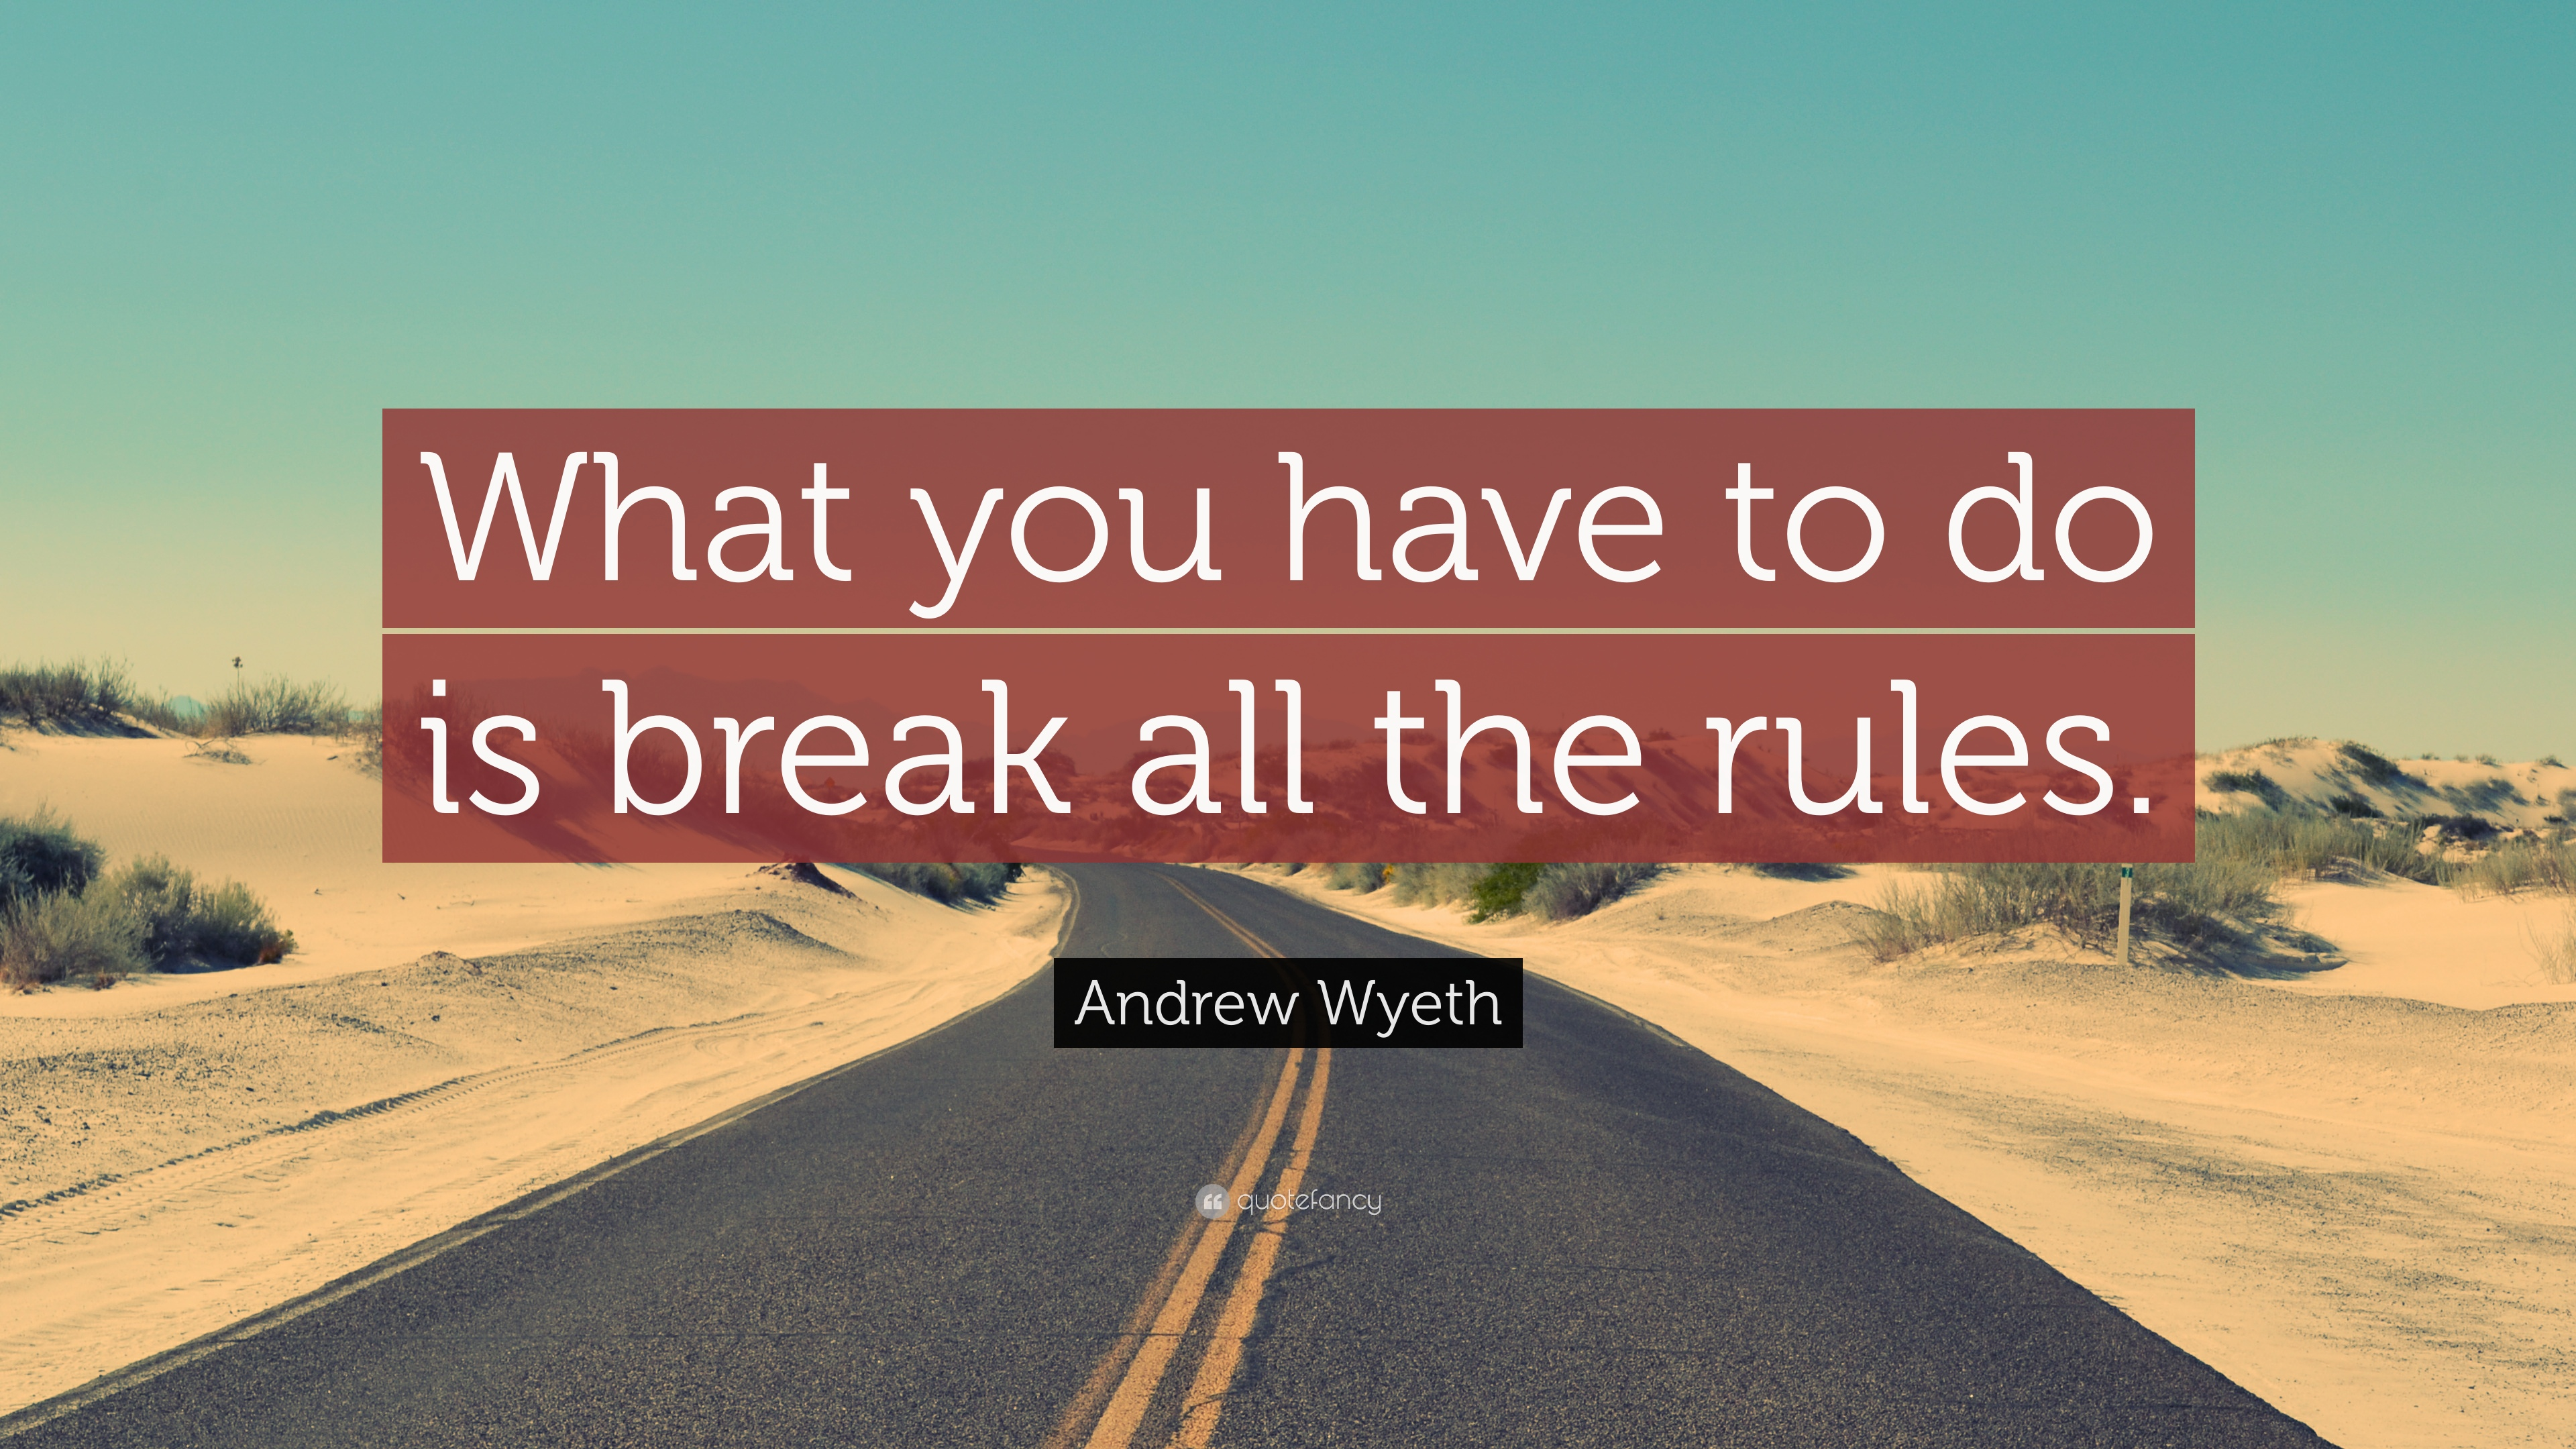 andrew wyeth quote what you have to do is break all the rules 7